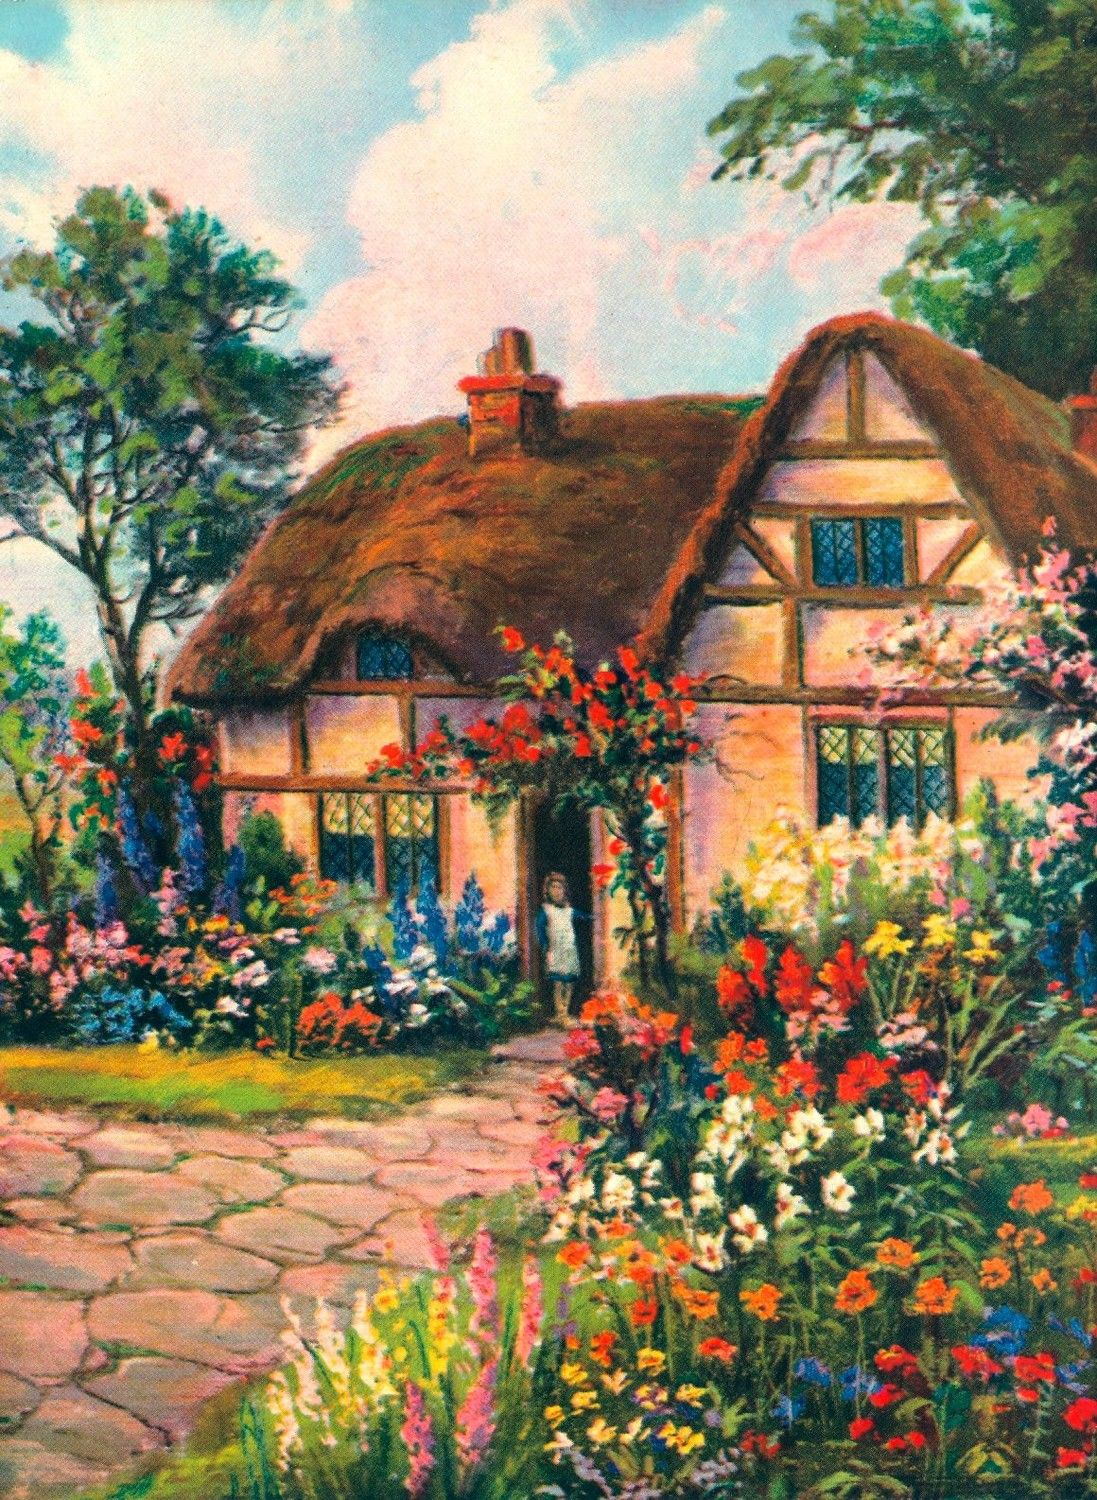 Vintage cottage vintage house illustrations pinterest for Classic house with flower garden